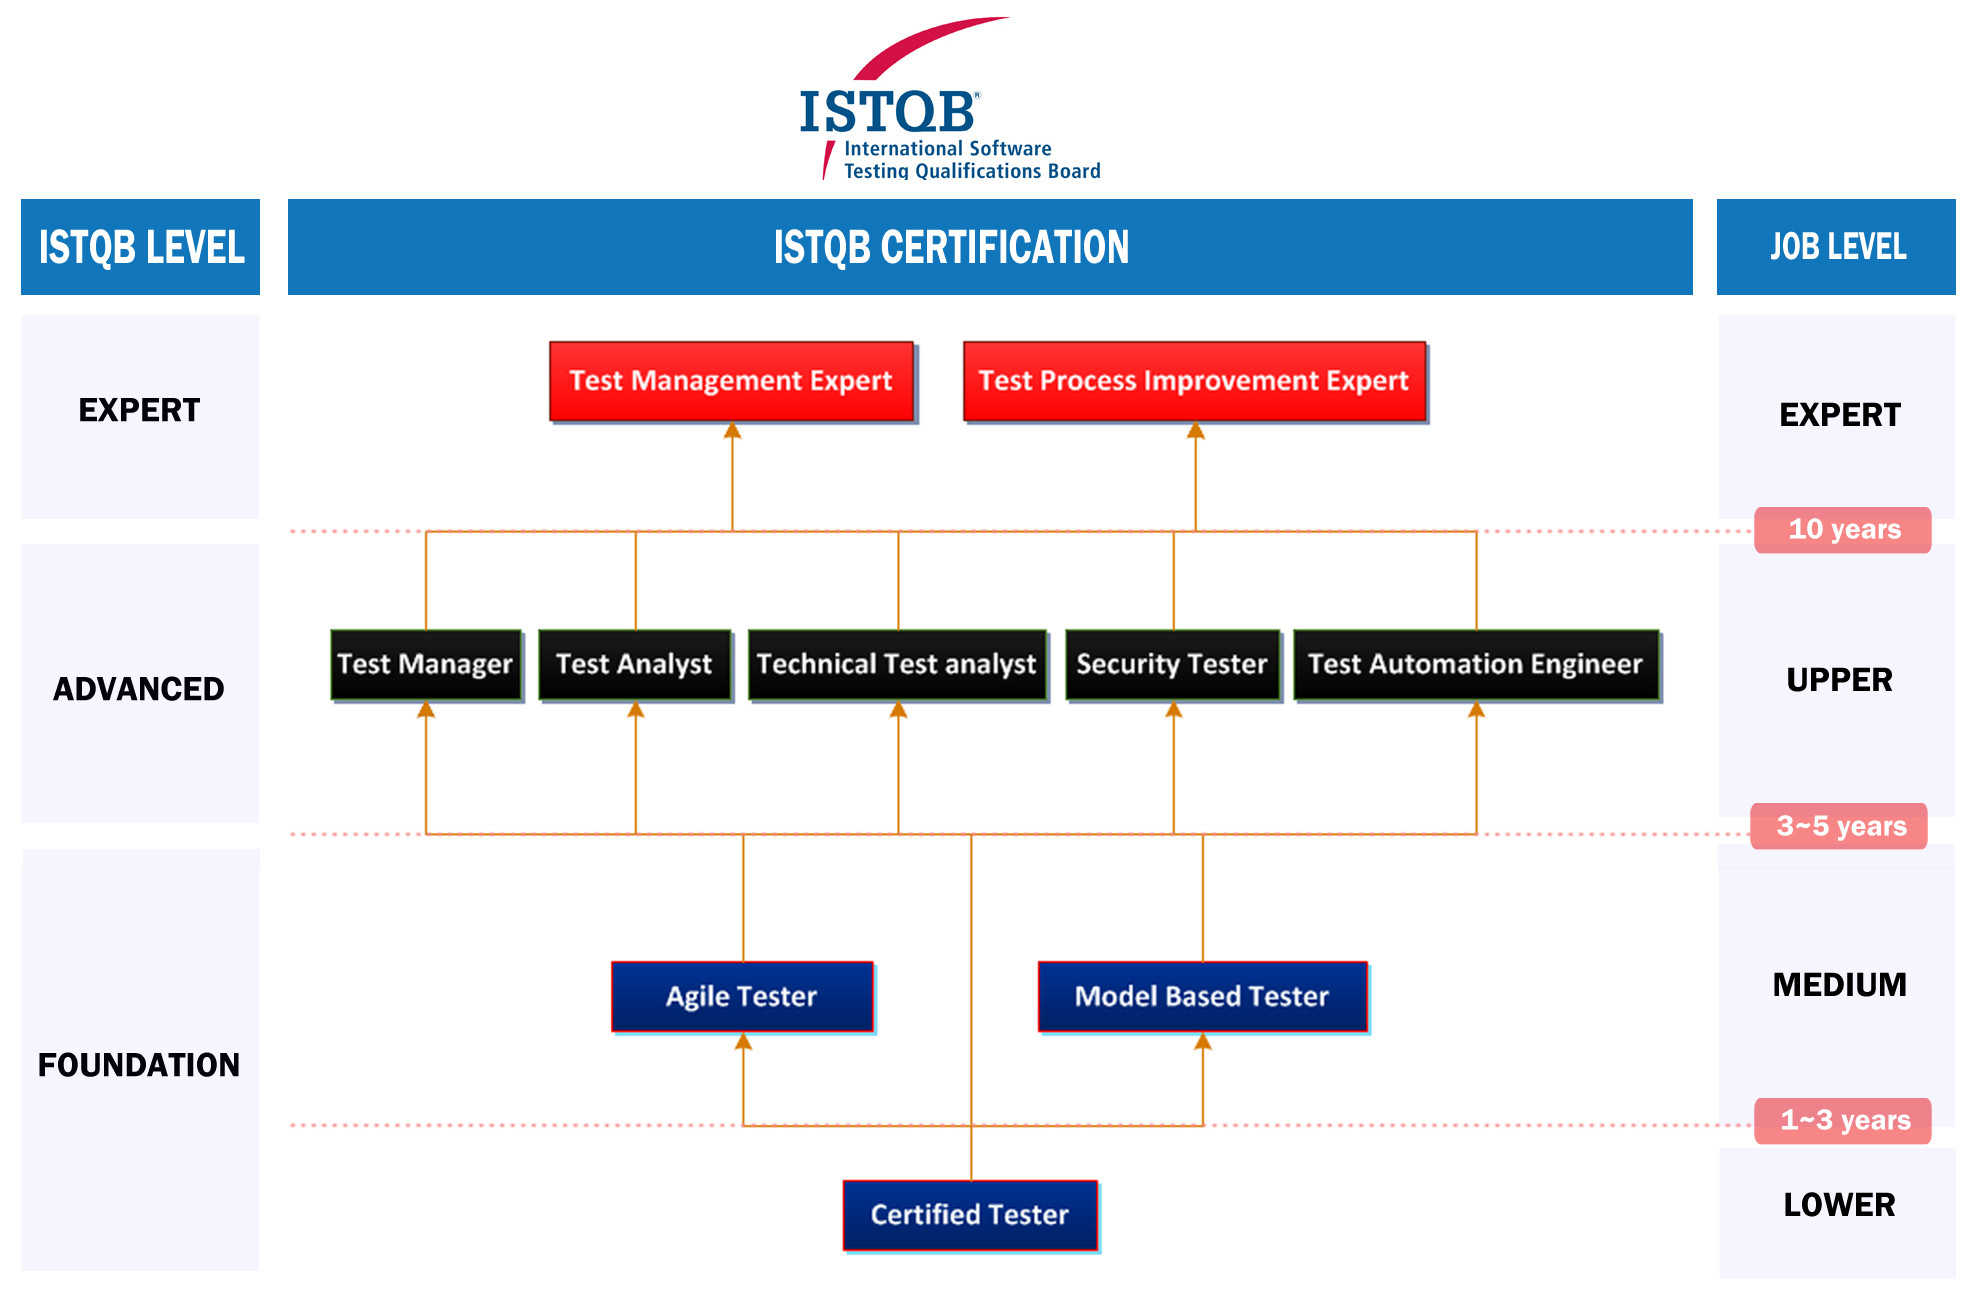 Istqb certifying software testers worldwide aiit istqb certifications 1betcityfo Image collections